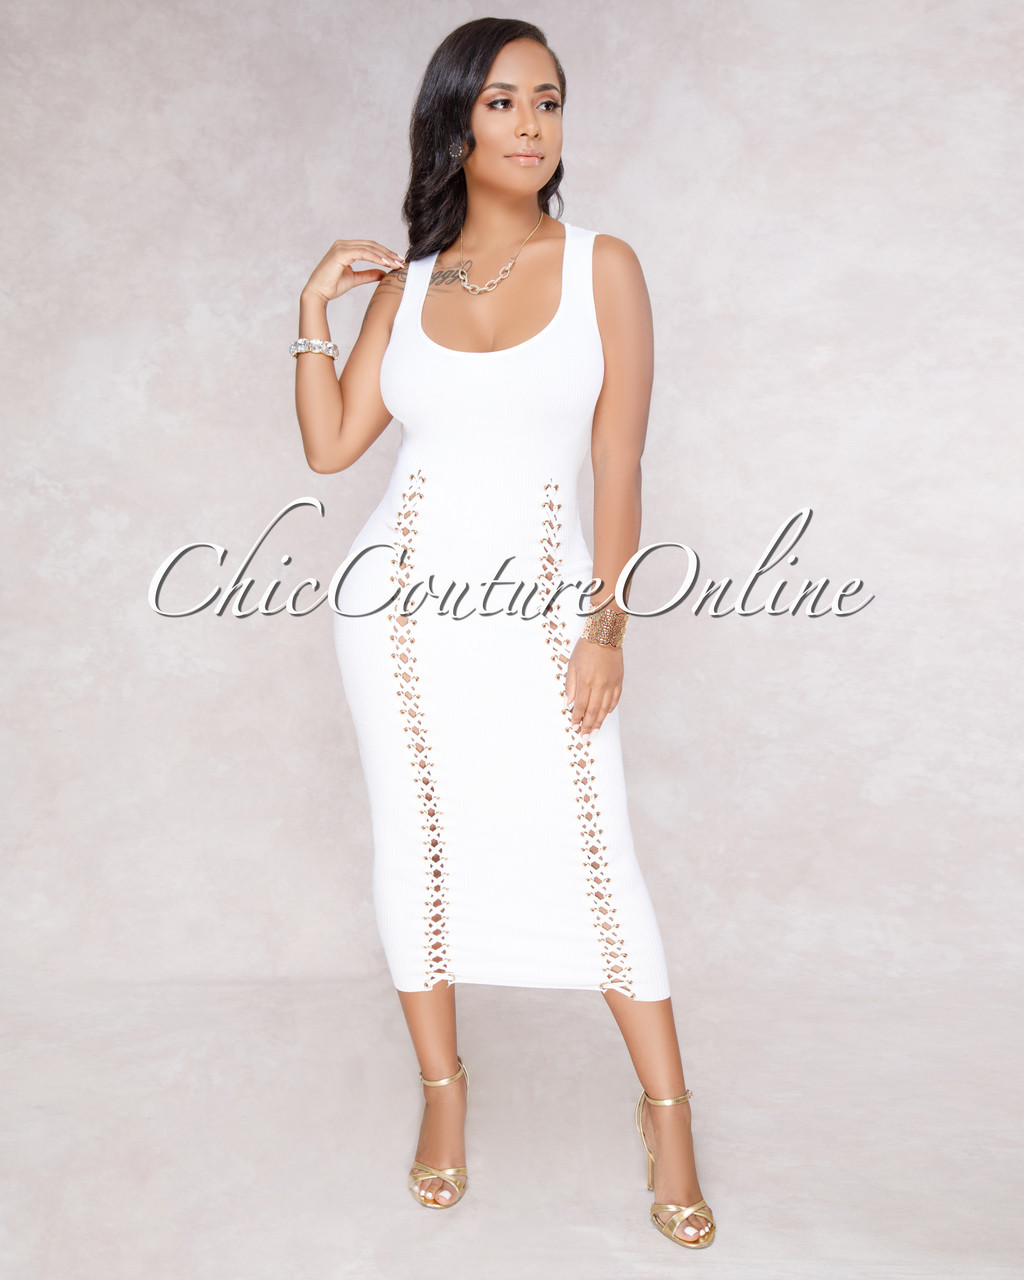 f789b88db1c Mayrin White Lace-Up Front Ribbed Dress. Price   55.00. Image 1